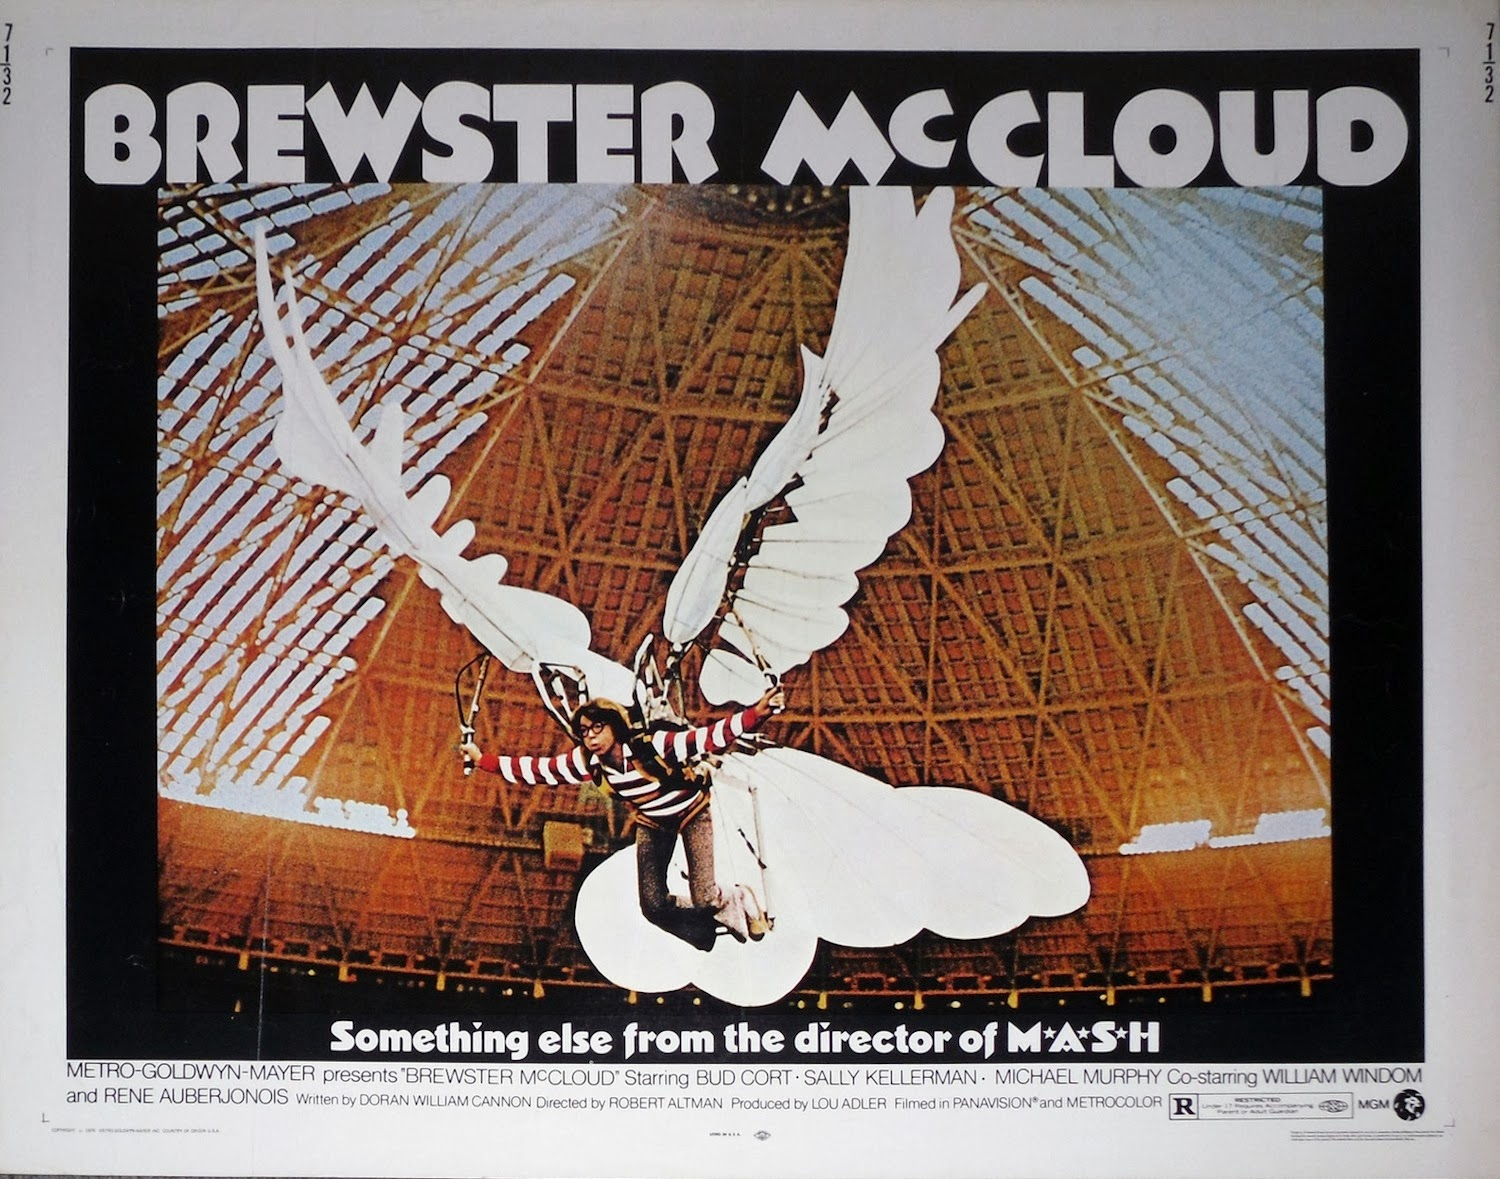 best website e168f fffe6 Brewster McCloud is a 1970 experimental film directed by Robert Altman. It  concerns a young recluse (Bud Cort, as the title character) who lives in a  ...